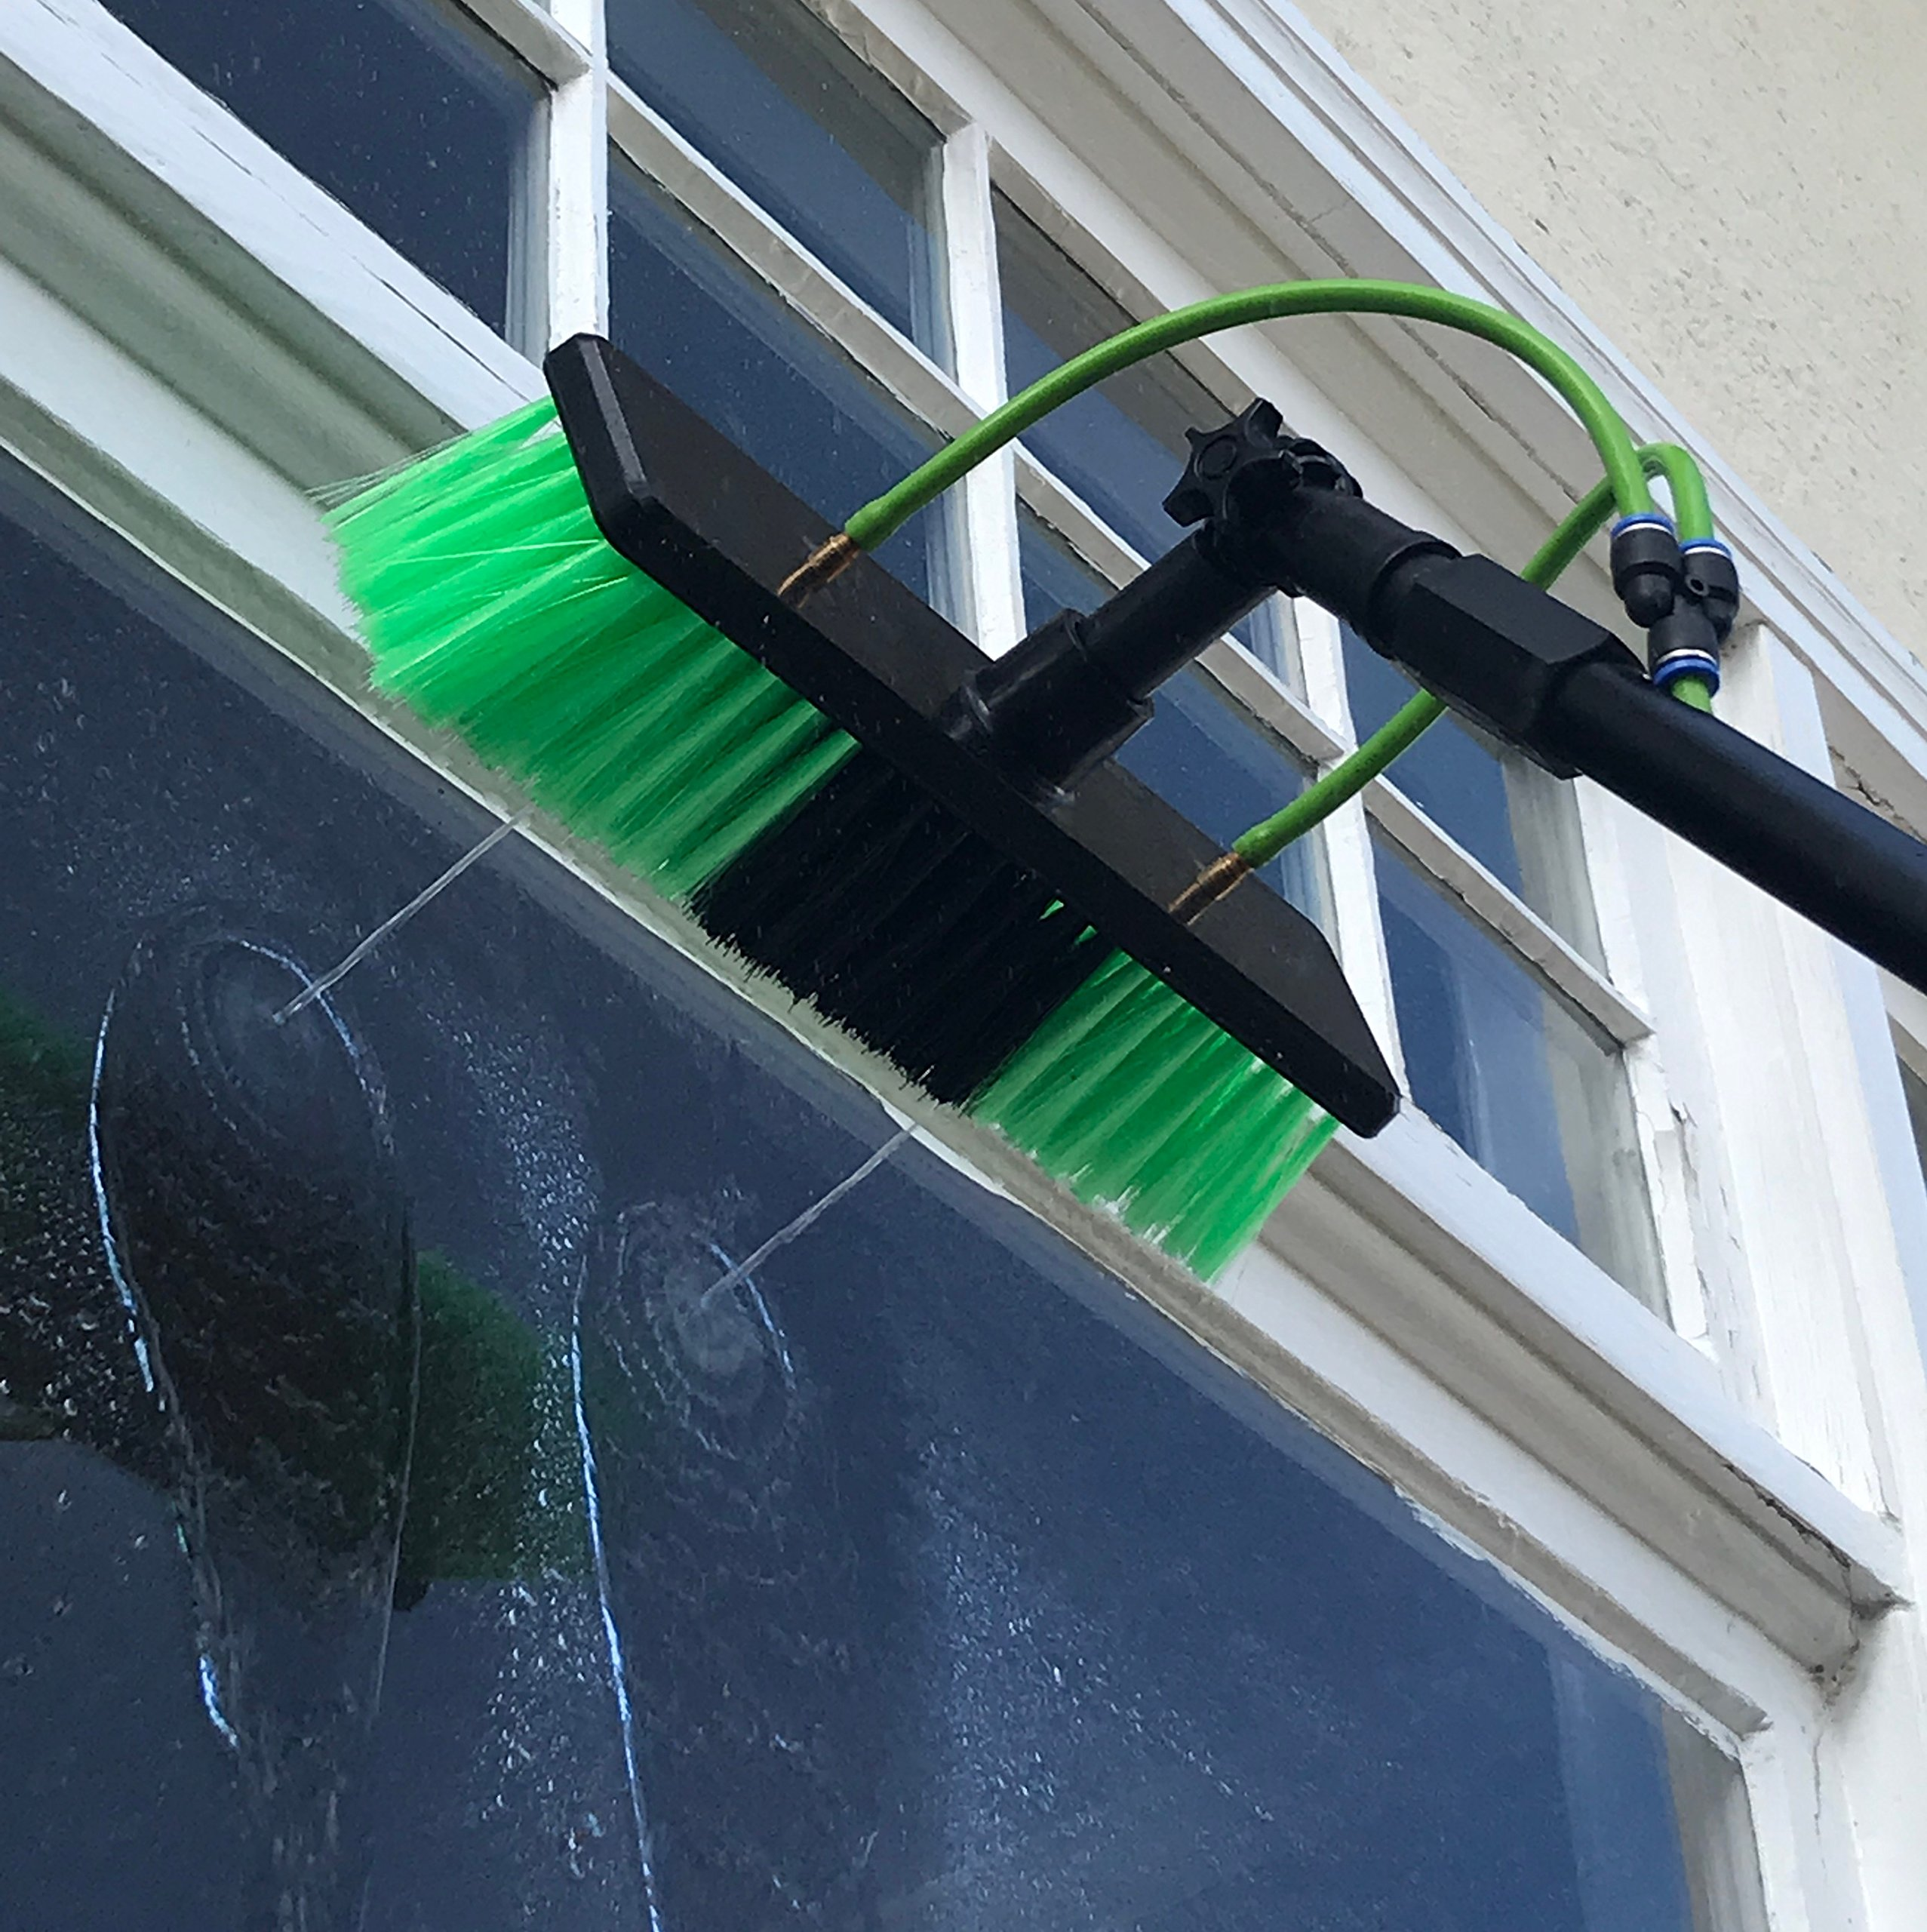 30 ft Water Fed Pole, Window & Solar Panel Cleaning Tool with Brush & Squeegee AquaSpray by EquipMaxx by EquipMaxx AquaSpray (Image #5)